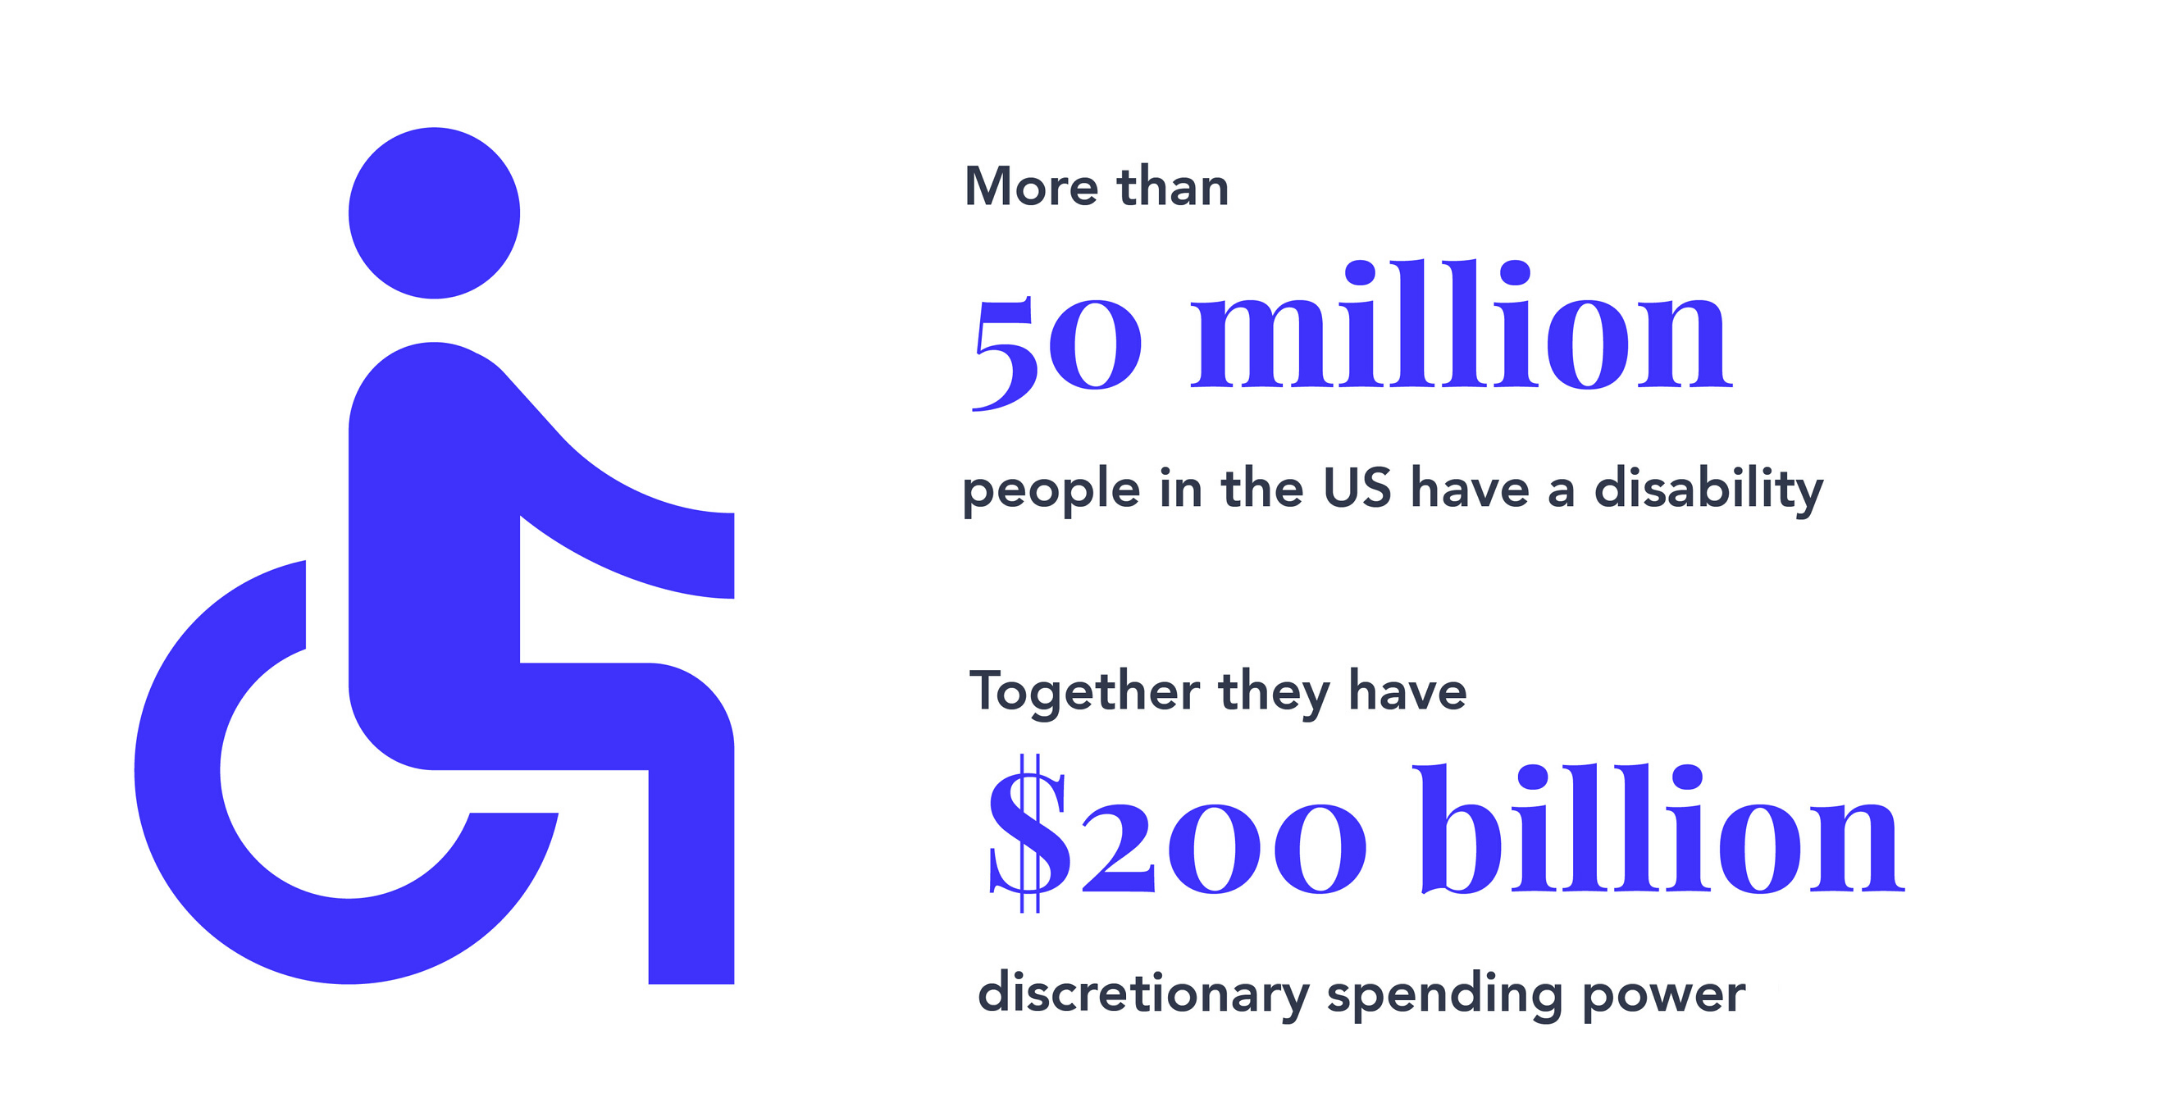 People with disabilities and their discretionary spending power